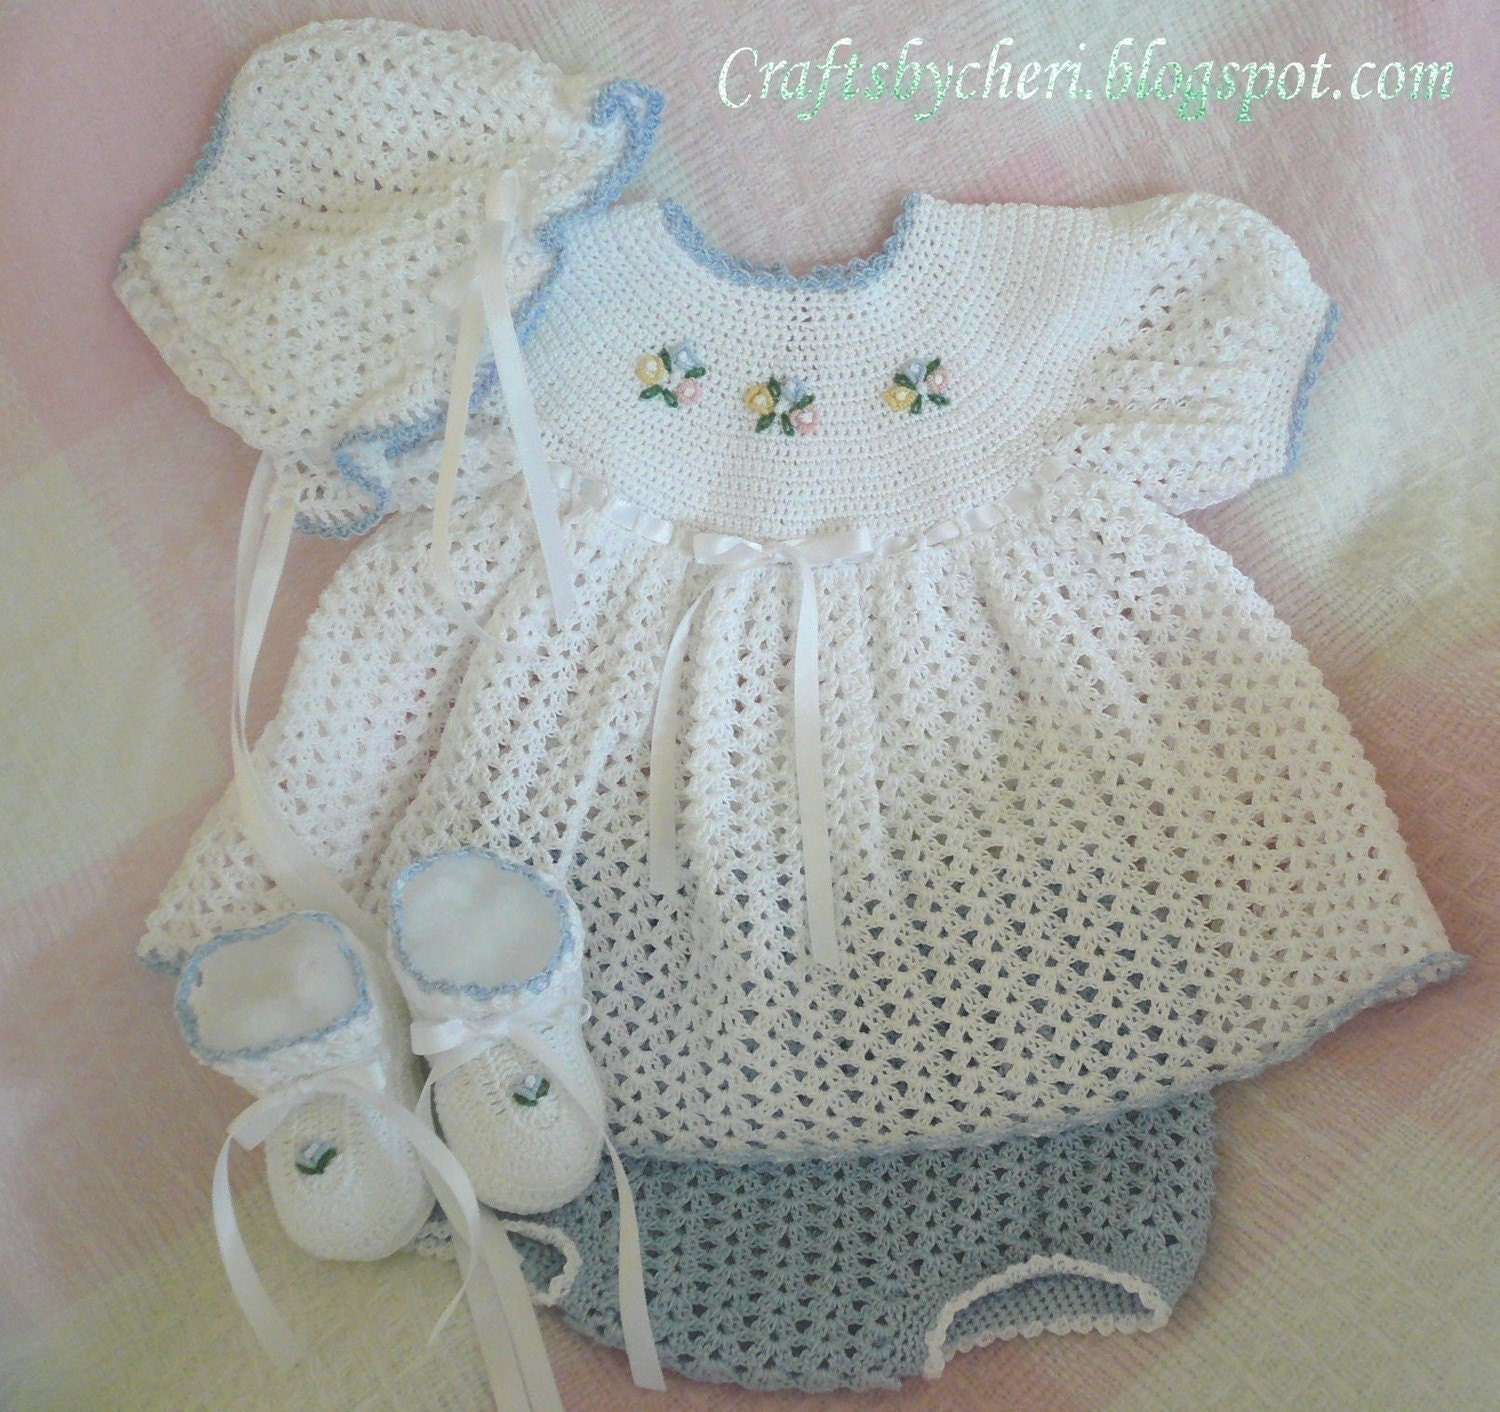 Crochet Baby Dress And Bonnet Pattern : Cheri Crochet Original Baby PATTERN-Newborn size-Dress